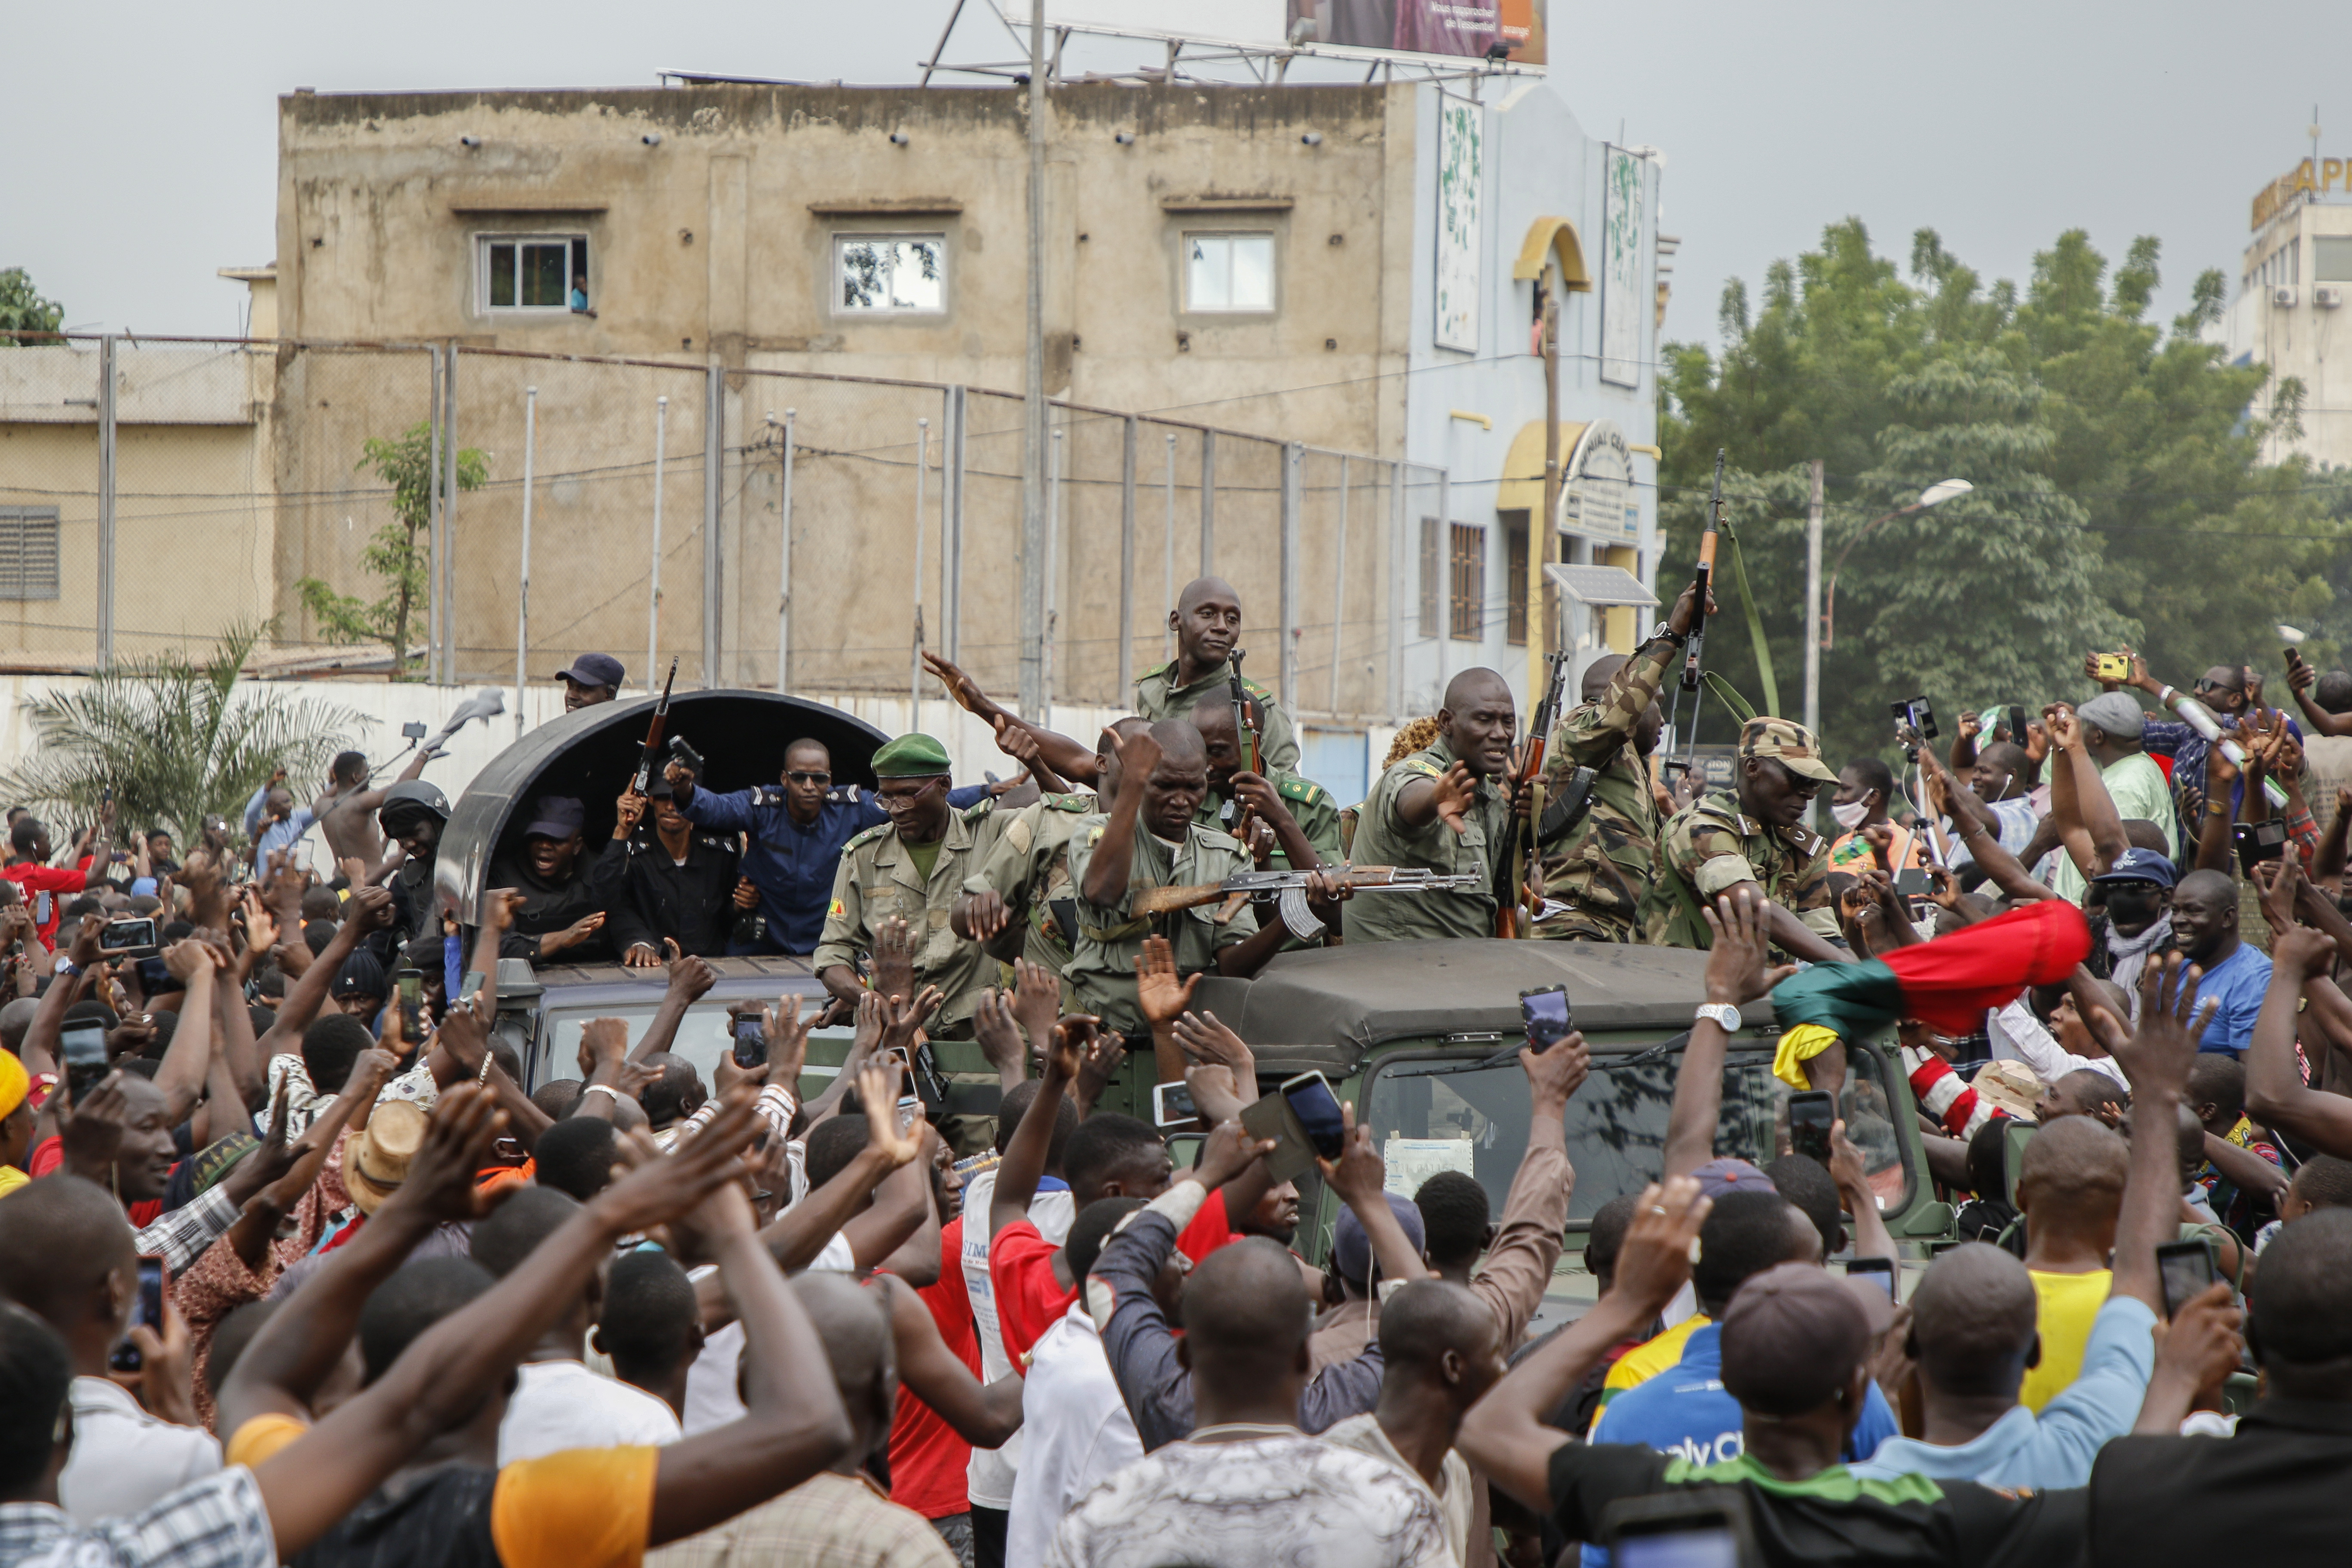 BAMAKO, MALI - AUGUST 18: Crowds cheer as soldiers parade in vehicles along the Boulevard de l'Independance on August 18, 2020 in Bamako, Mali. President Ibrahim Boubacar Keita and Prime Minister Boubou Cisse have been taken captive by mutinying soldiers, according to multiple news reports. Their arrest was preceded by a takeover the Kati military camp, about 15km from Bamako.(Photo by John Kalapo/Getty Images)